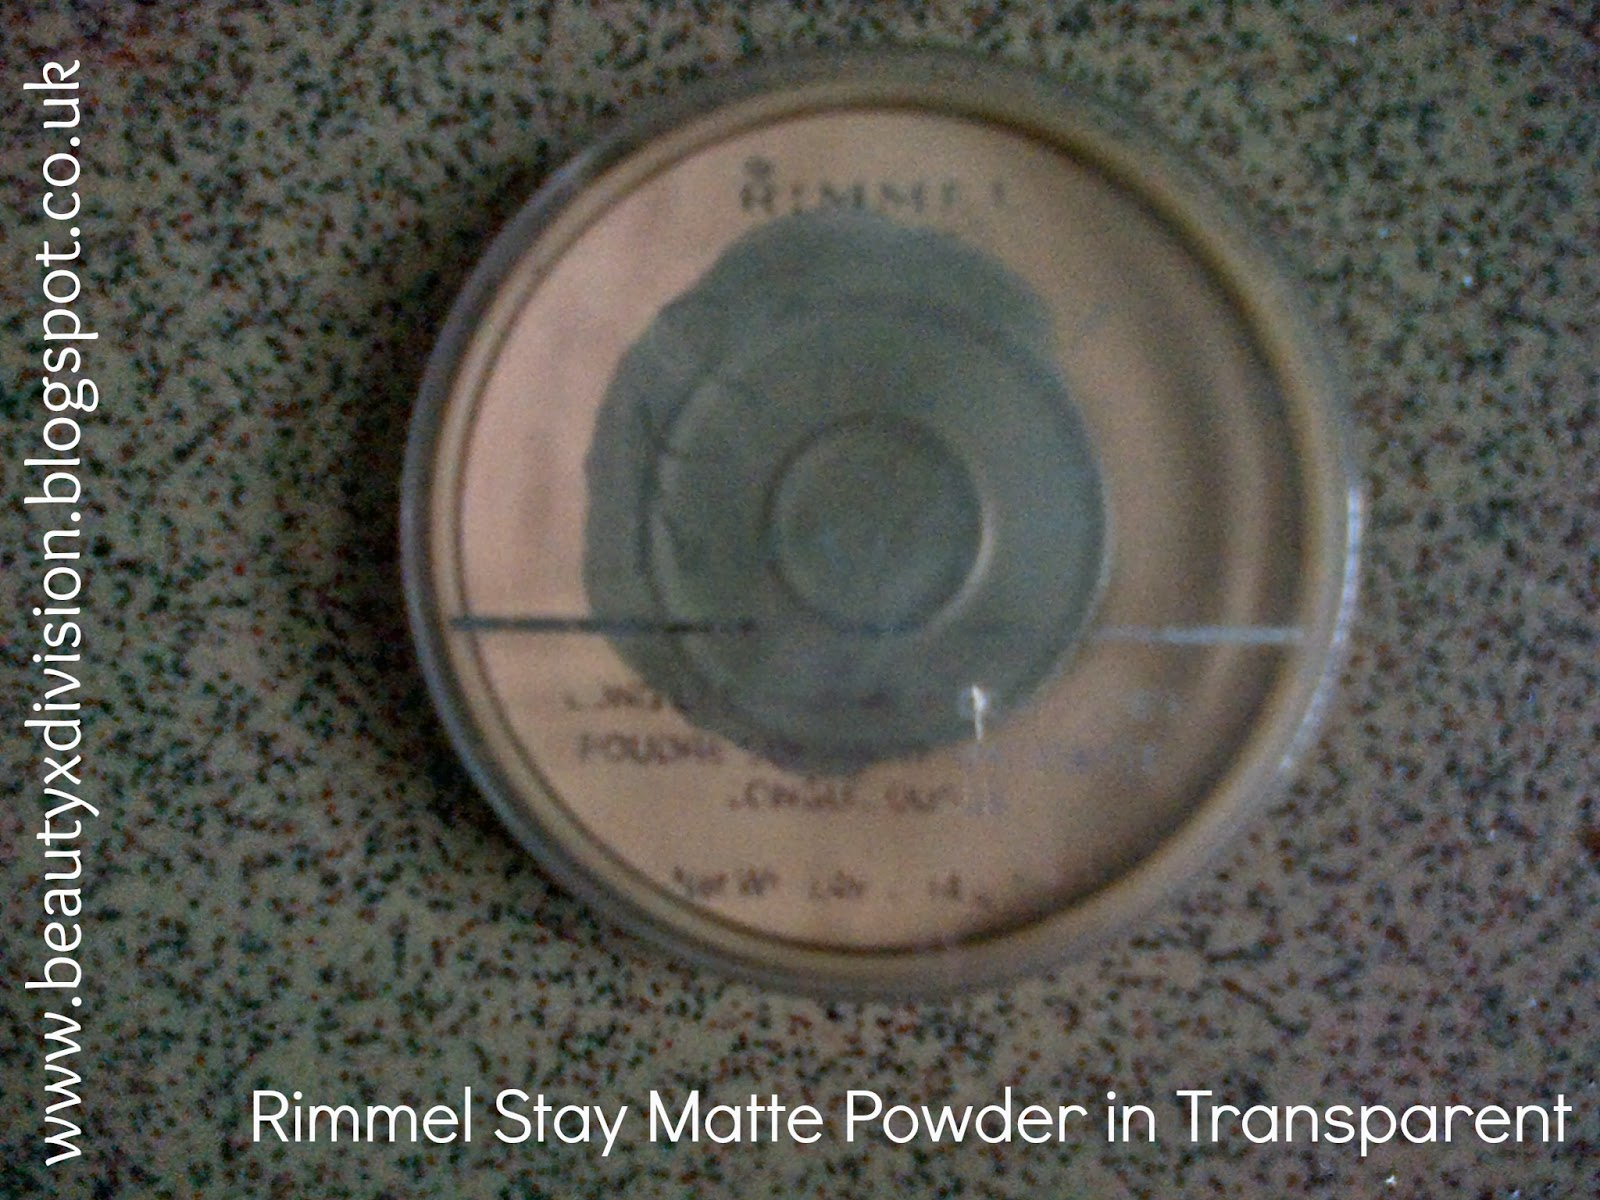 Rimmel Stay Matte Powder Transparent